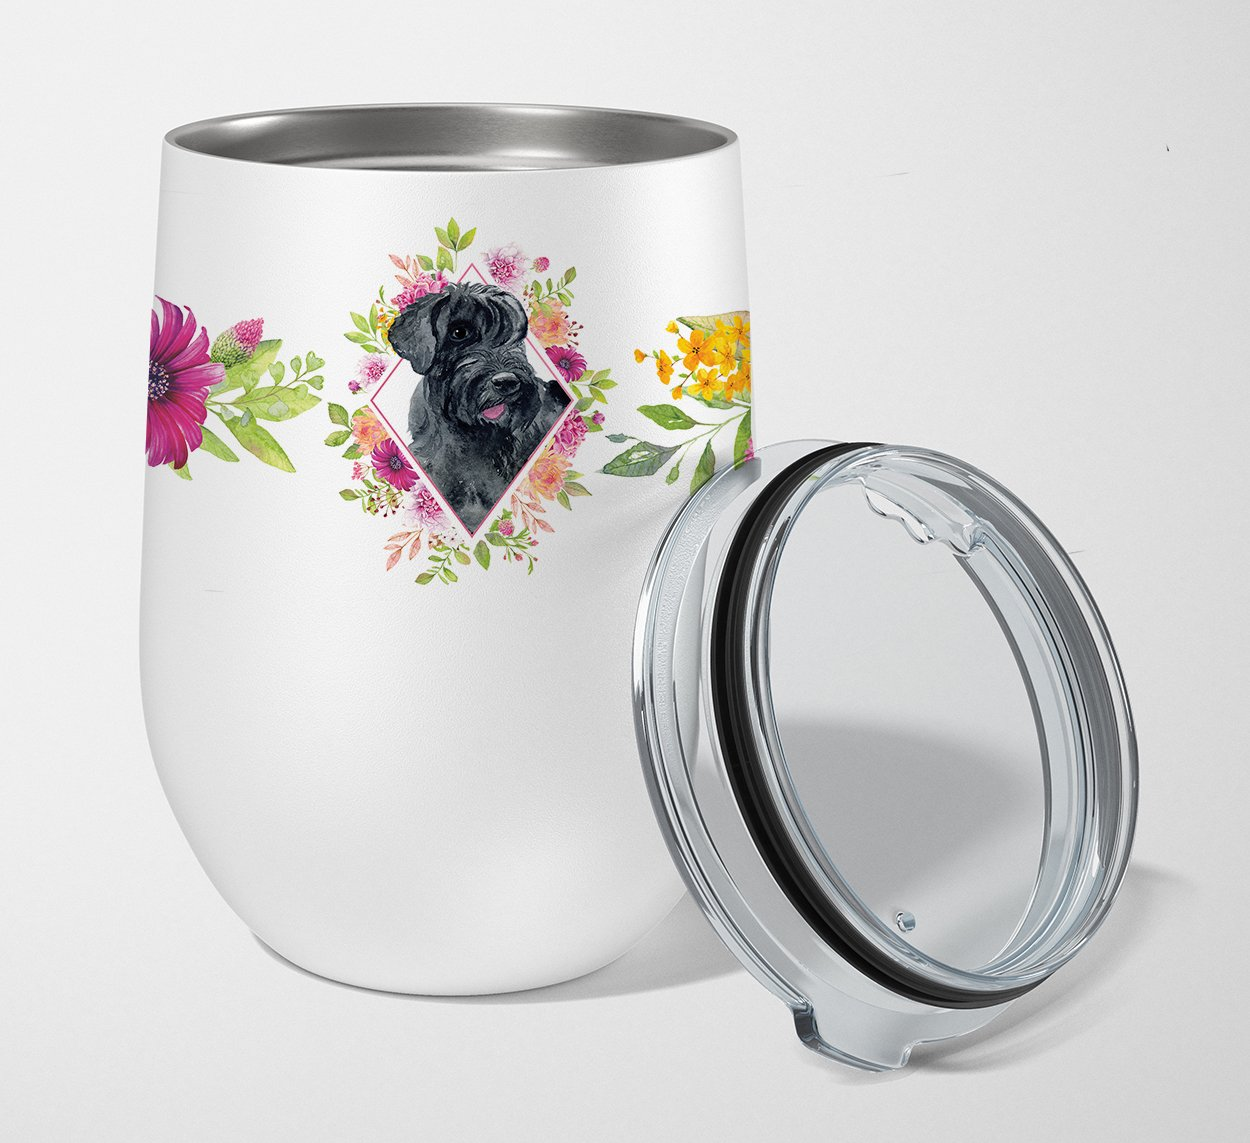 Giant Schnauzer Pink Flowers Stainless Steel 12 oz Stemless Wine Glass CK4178TBL12 by Caroline's Treasures